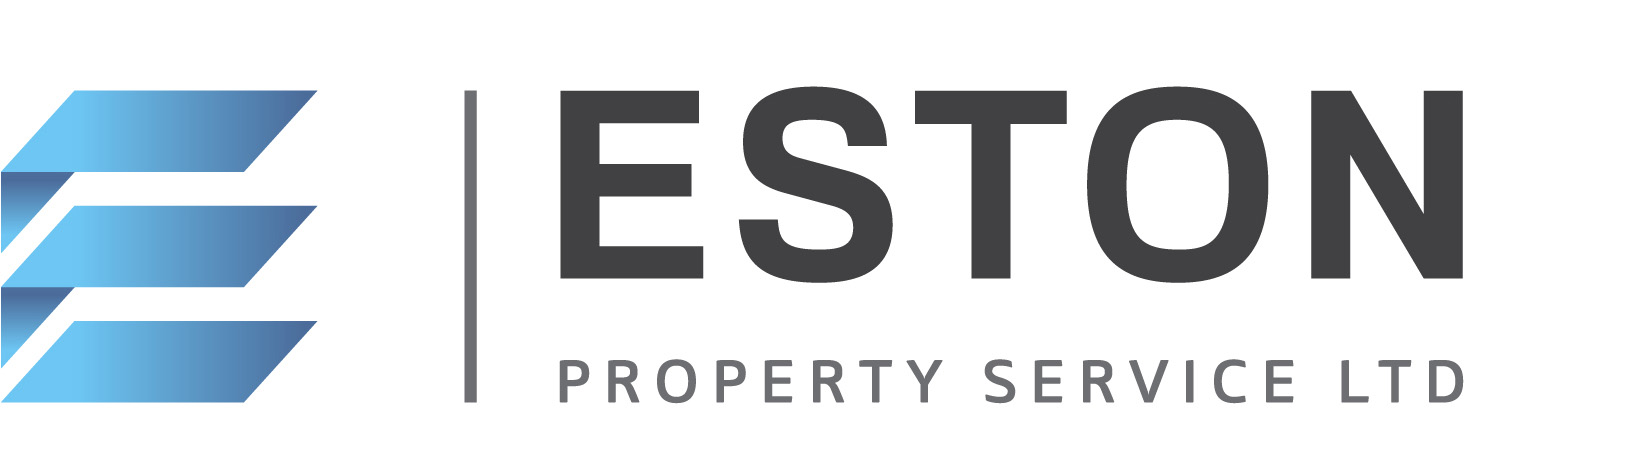 Eston Property Service Ltd